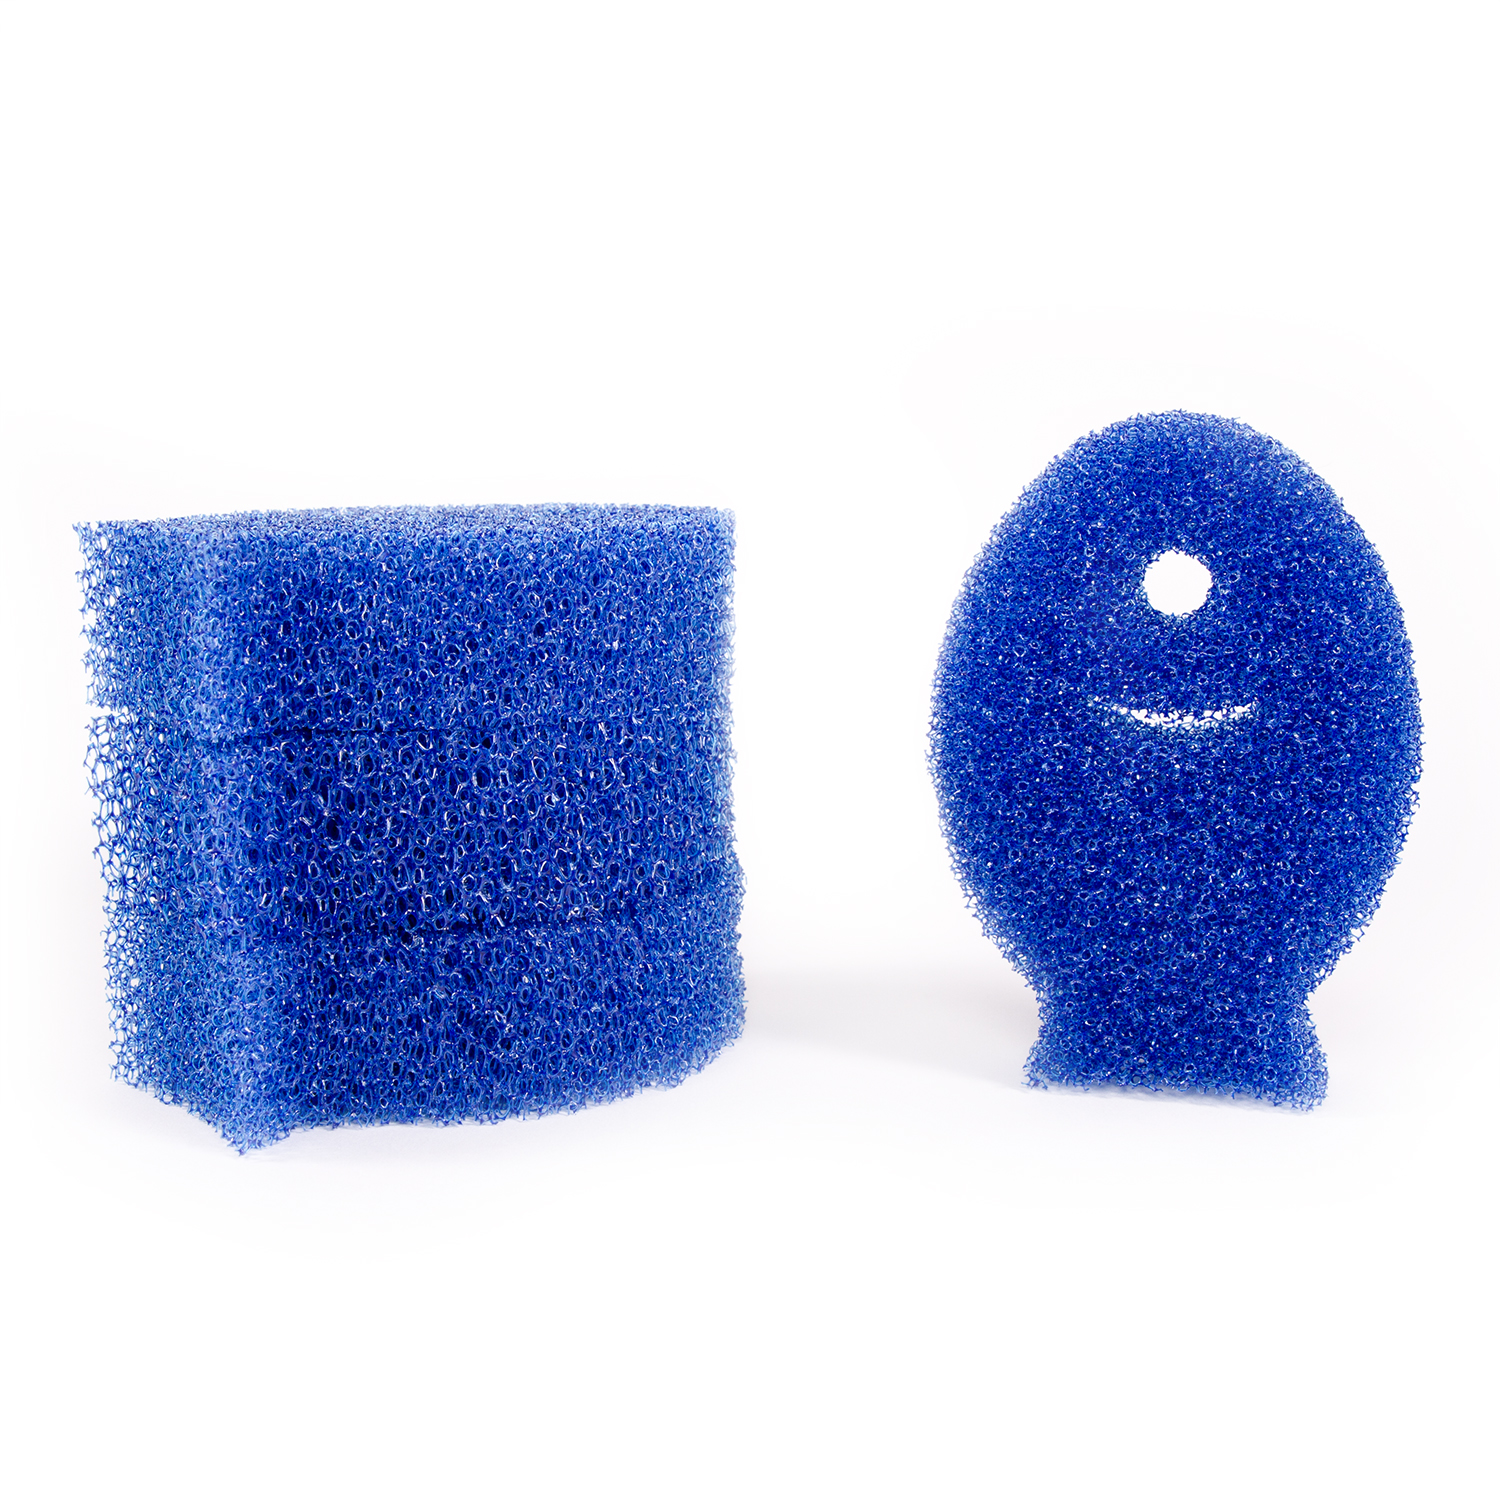 dishfish-scrubber-4-pack-art-shot.jpg